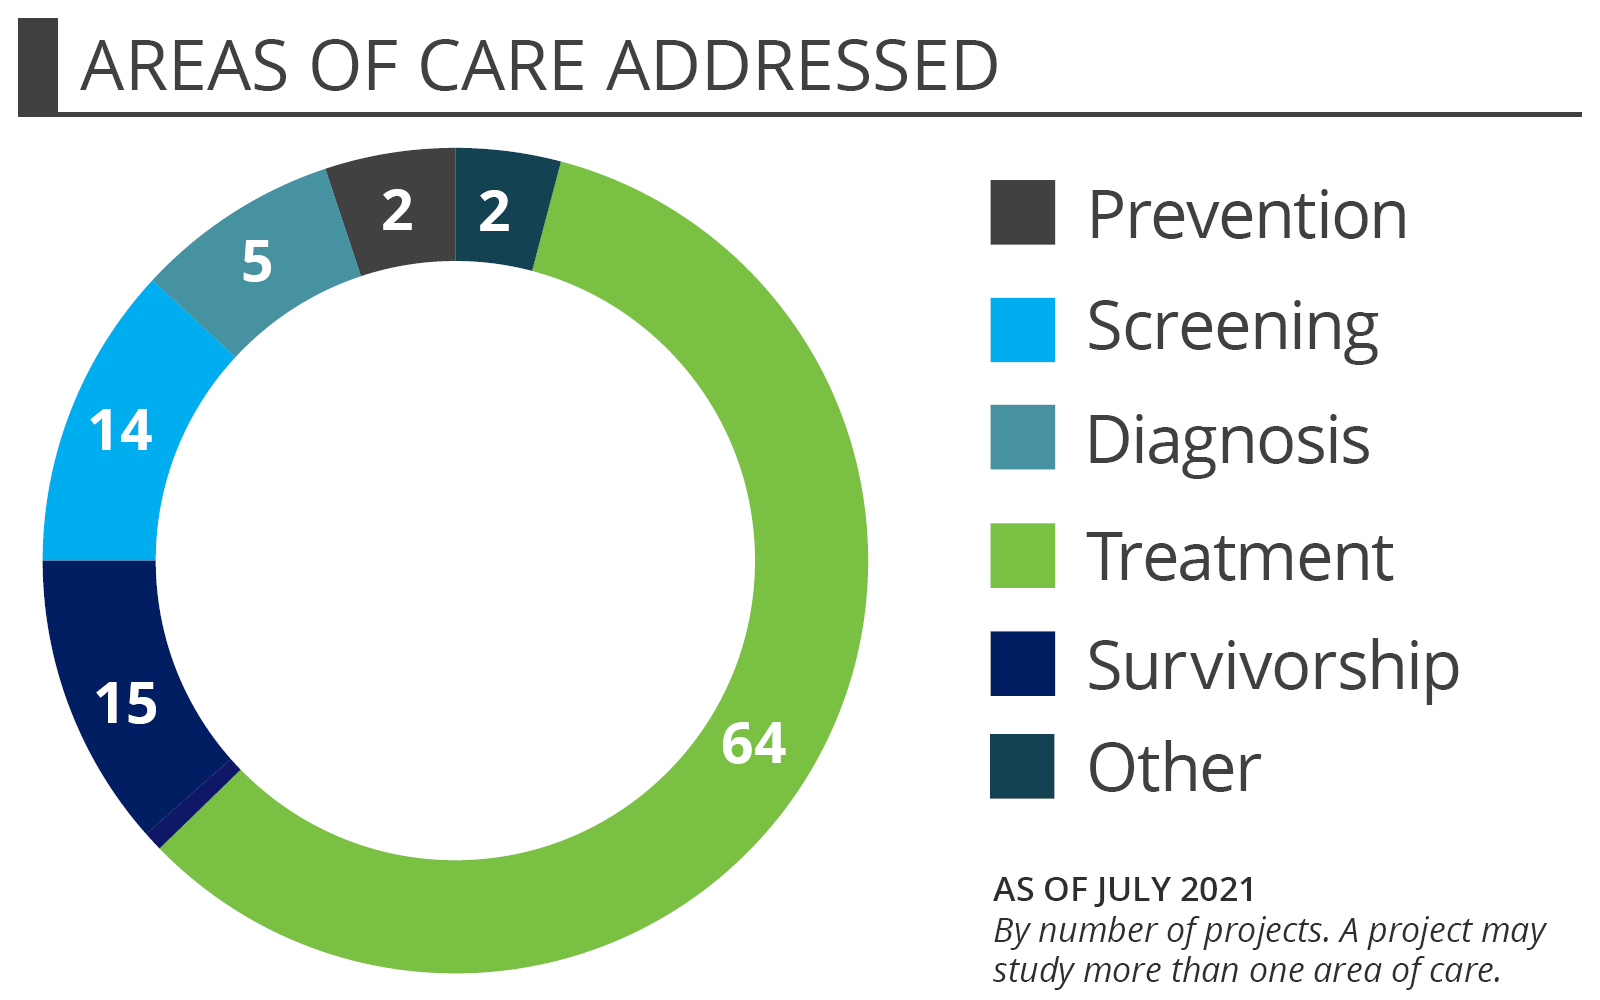 Cancer Project Portfolio - Areas of care addressed by number of projects